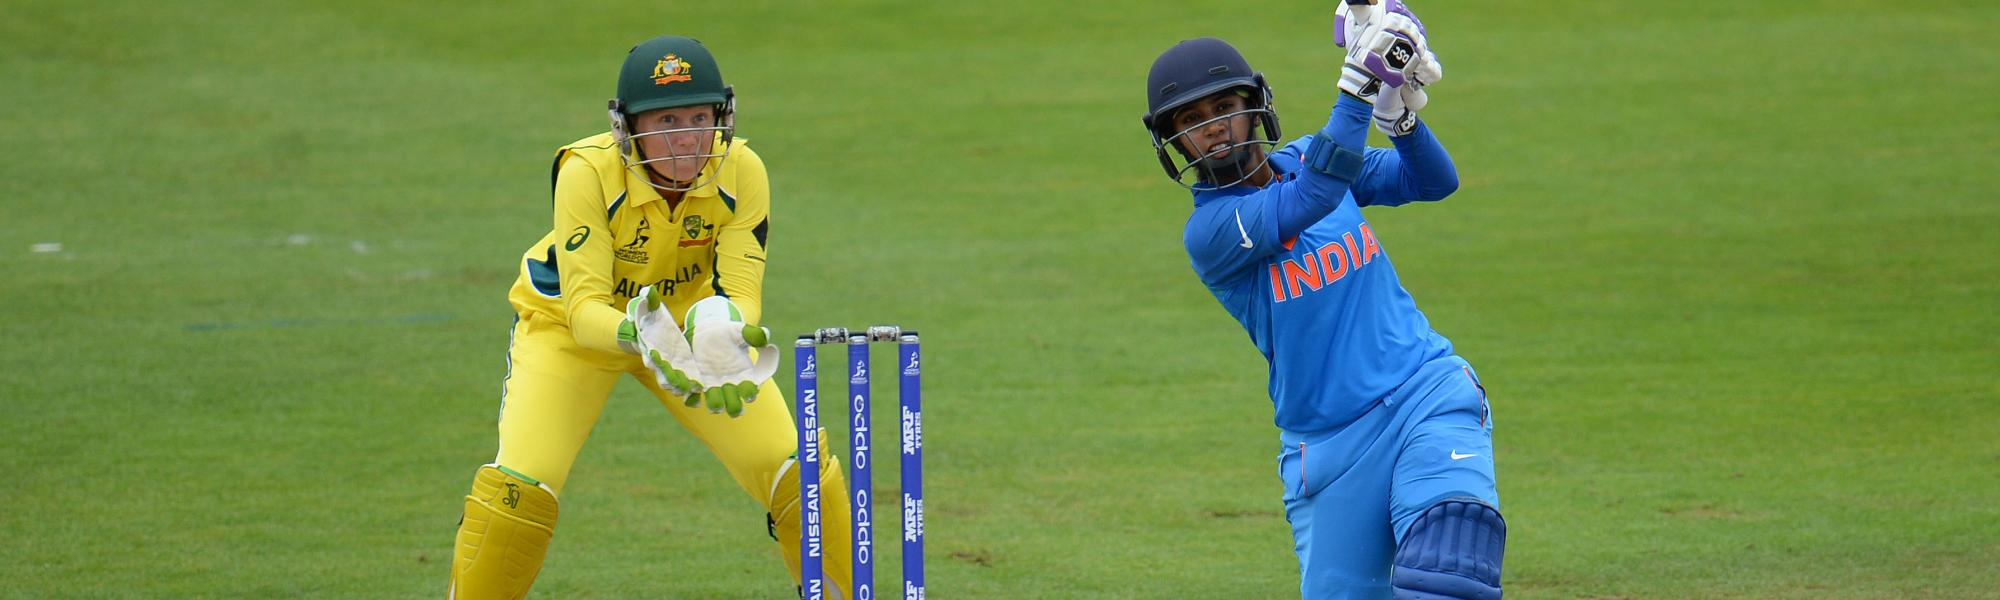 The only way to stop Mithali Raj breaking records is for her to make others.